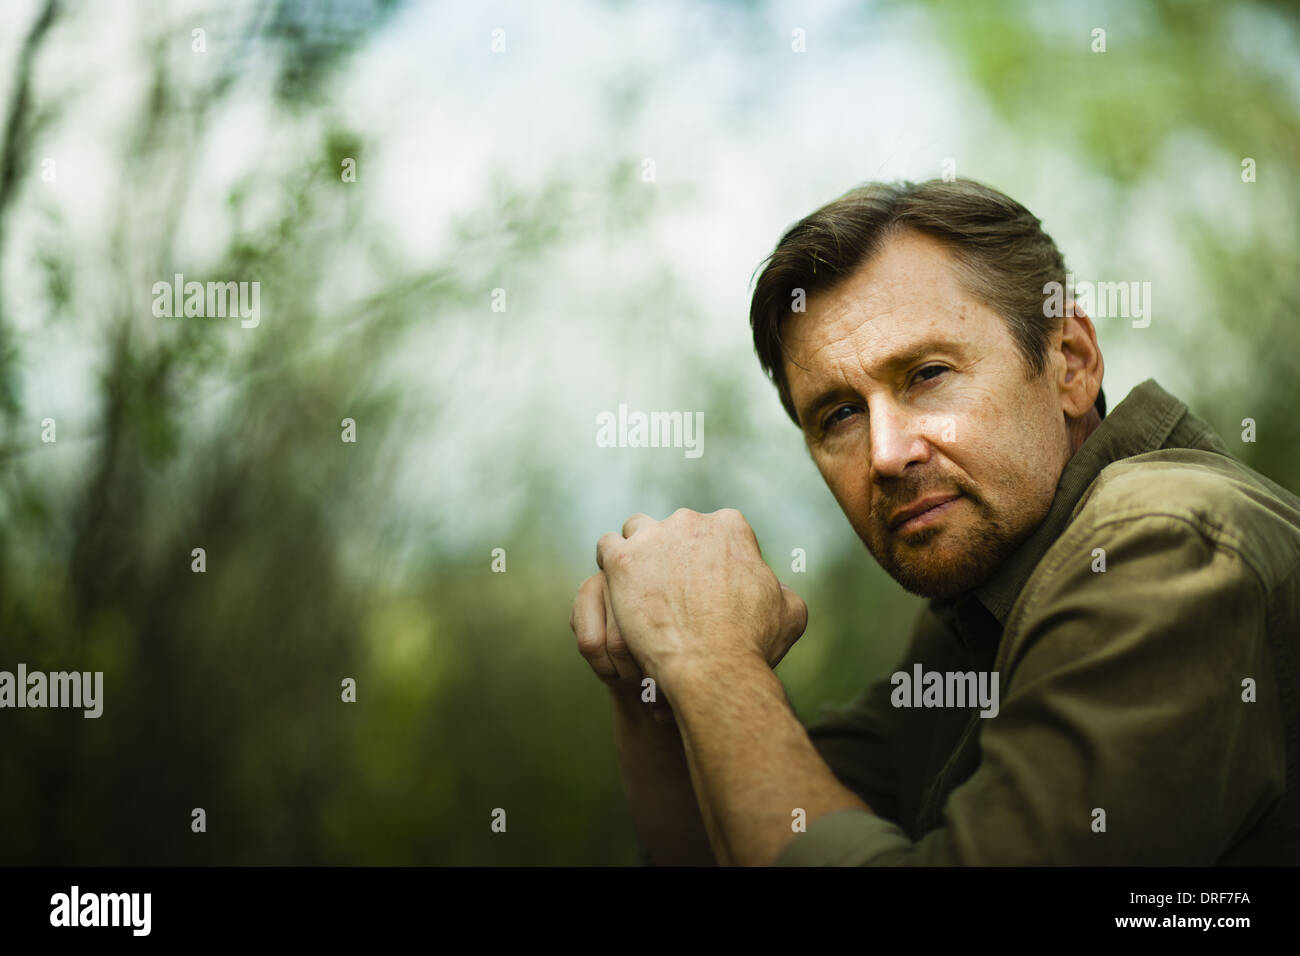 Colorado USA middle-aged man sits looking pensive hands folded - Stock Image